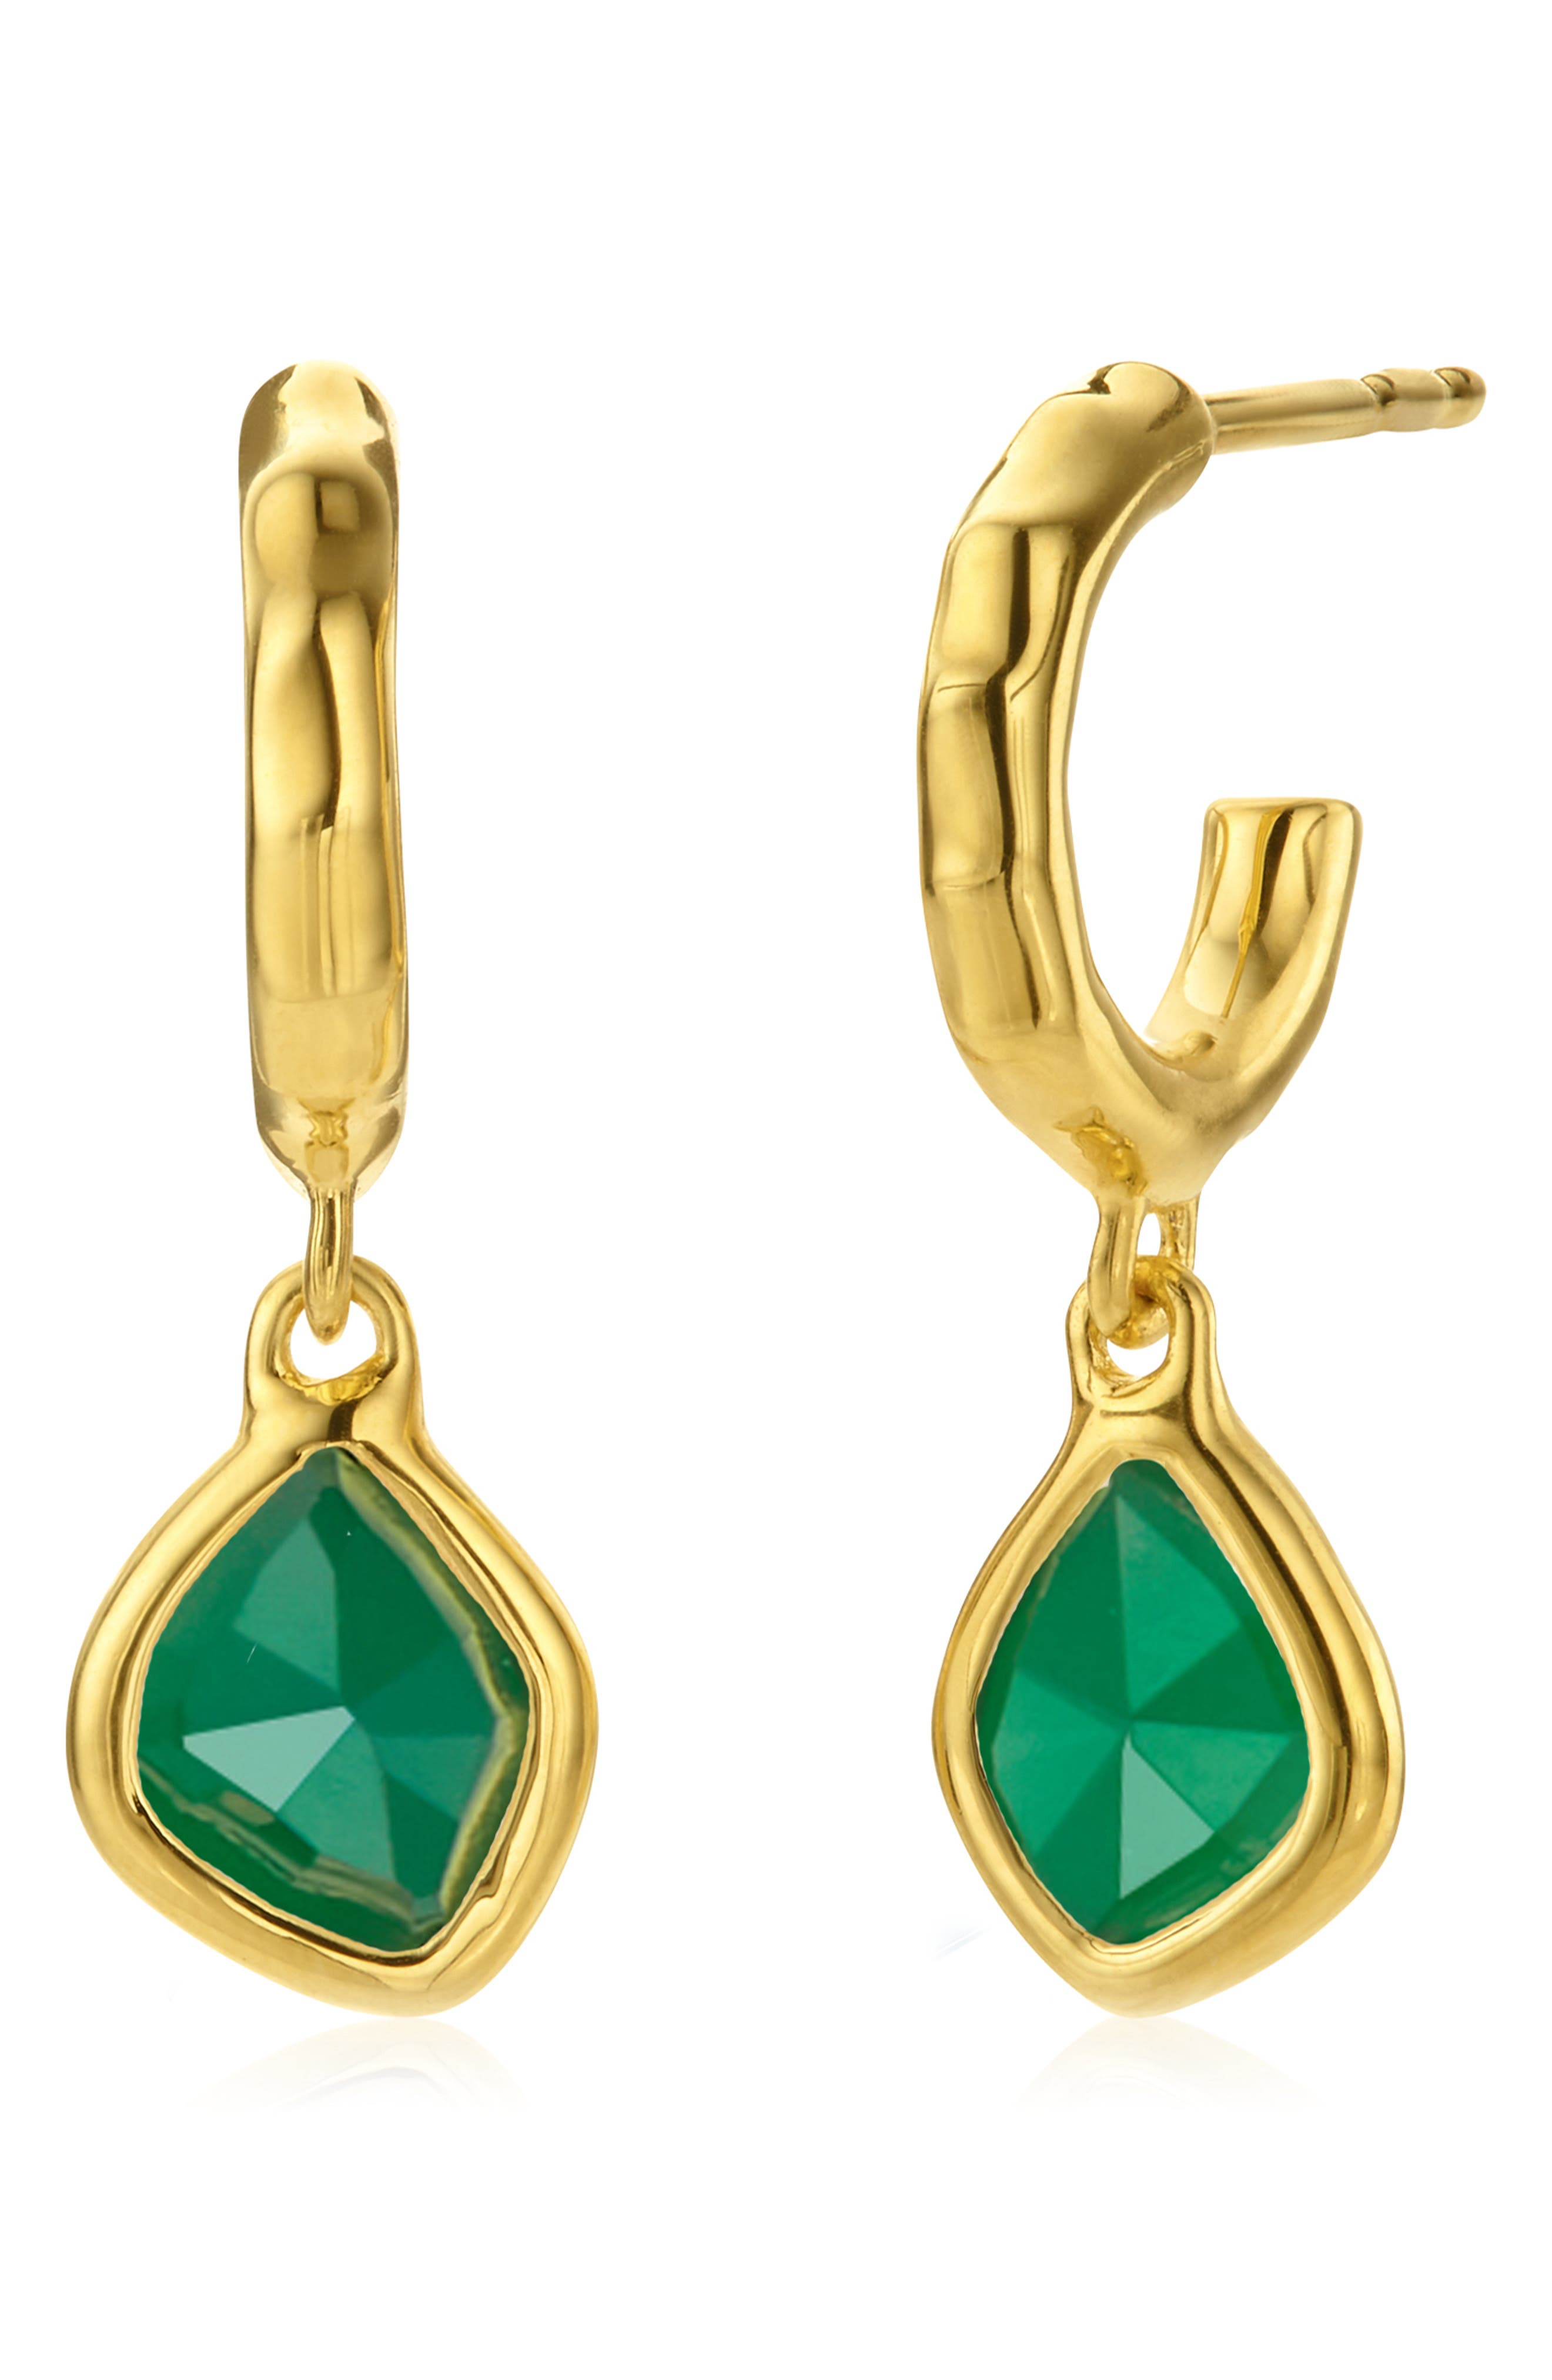 These organically shaped drop earrings flaunt the natural beauty of faceted semiprecious stones within glinting precious-metal settings. Style Name: Monica Vinader Siren Mini Nugget Drop Earrings. Style Number: 5820510. Available in stores.